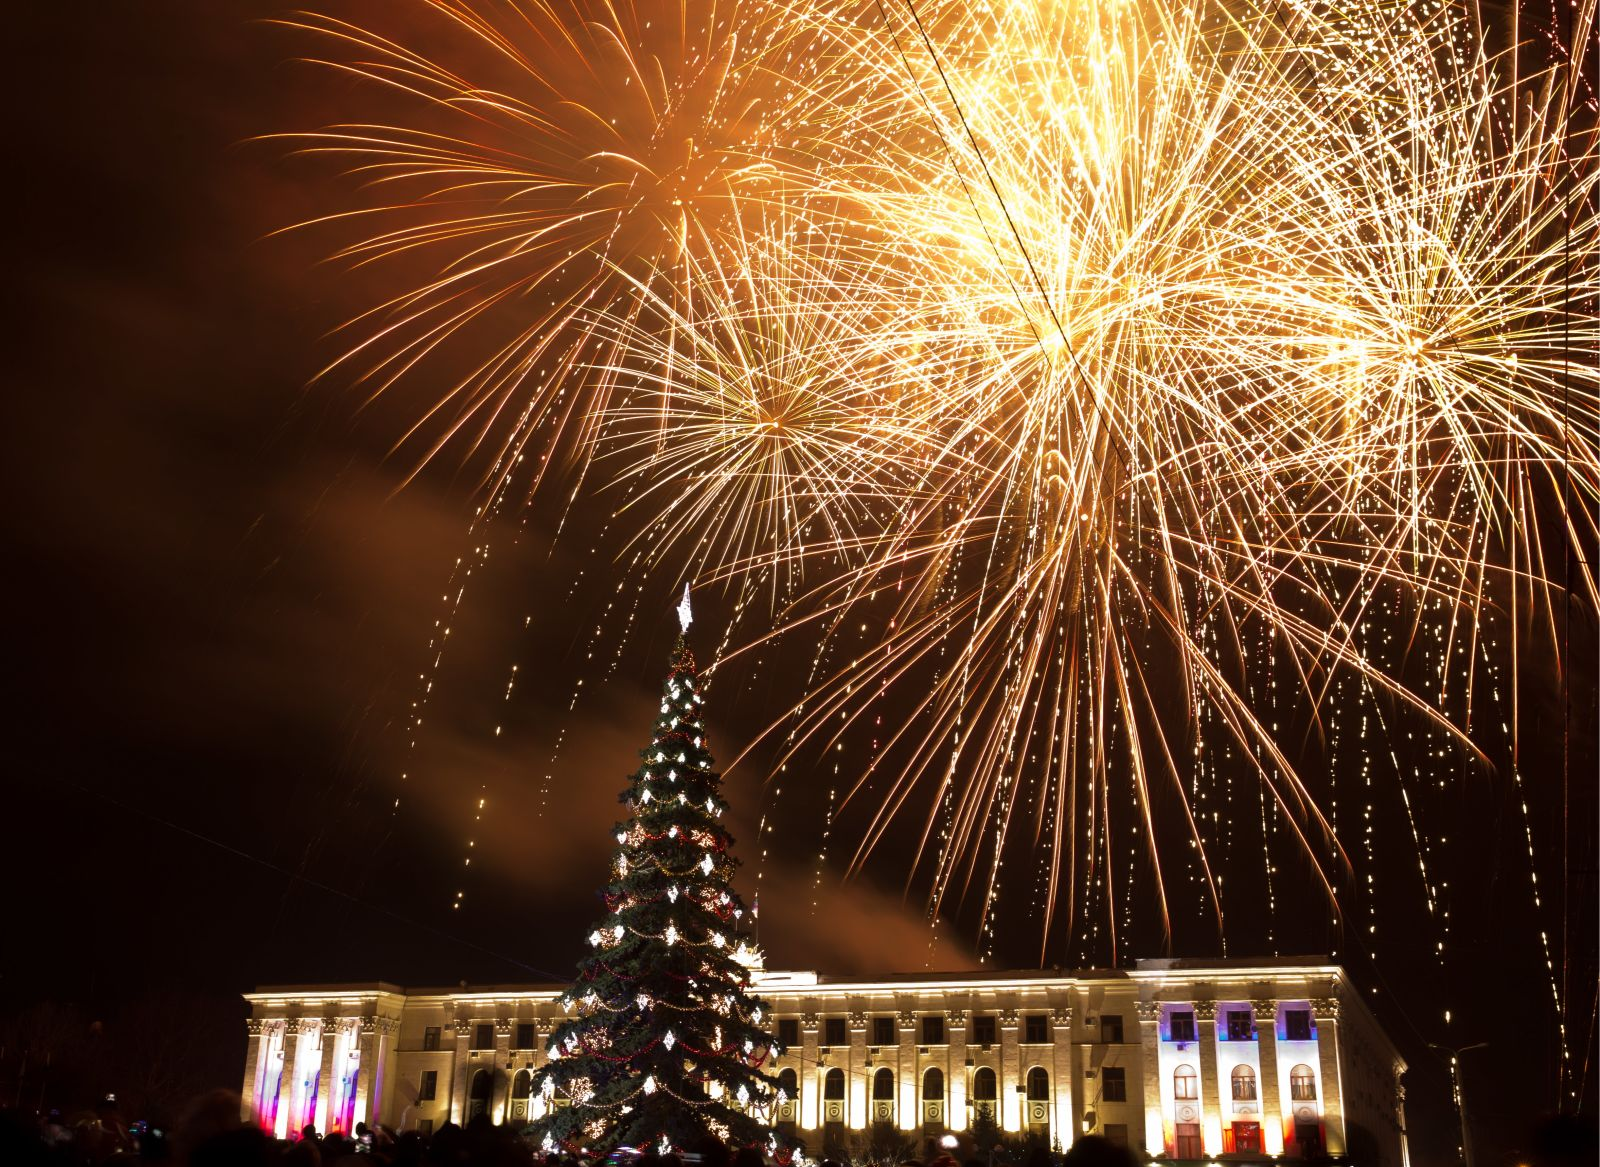 Fireworks go off over central Simferopol, Russia. Сергей Мальгавко ТАСС Getty Images.jpg